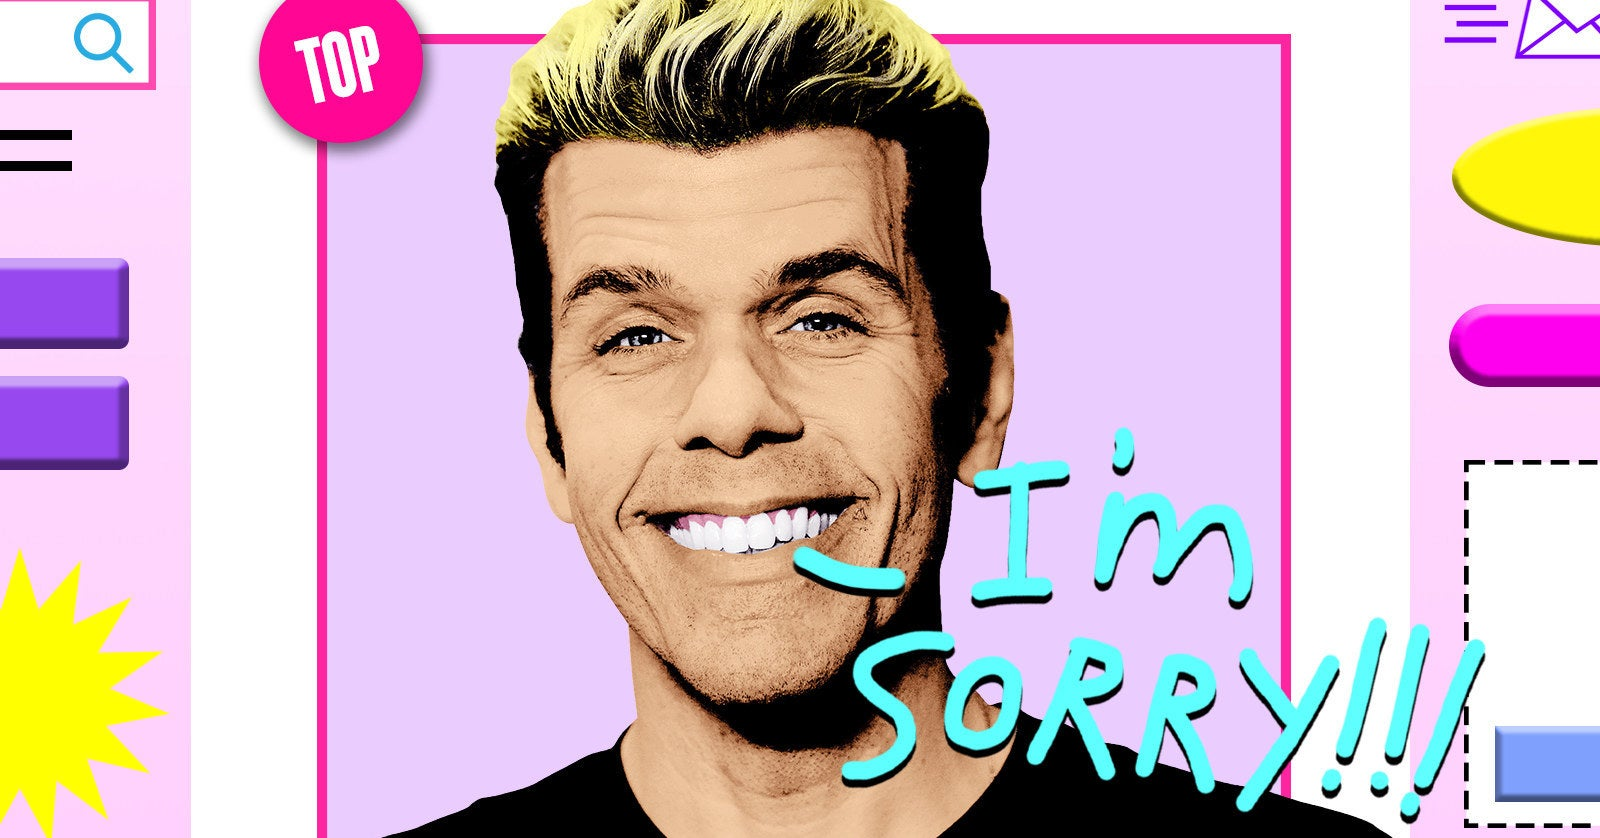 Perez Hilton Changed Gossip Blogging In The 2000s. Now He Says He's Sorry.